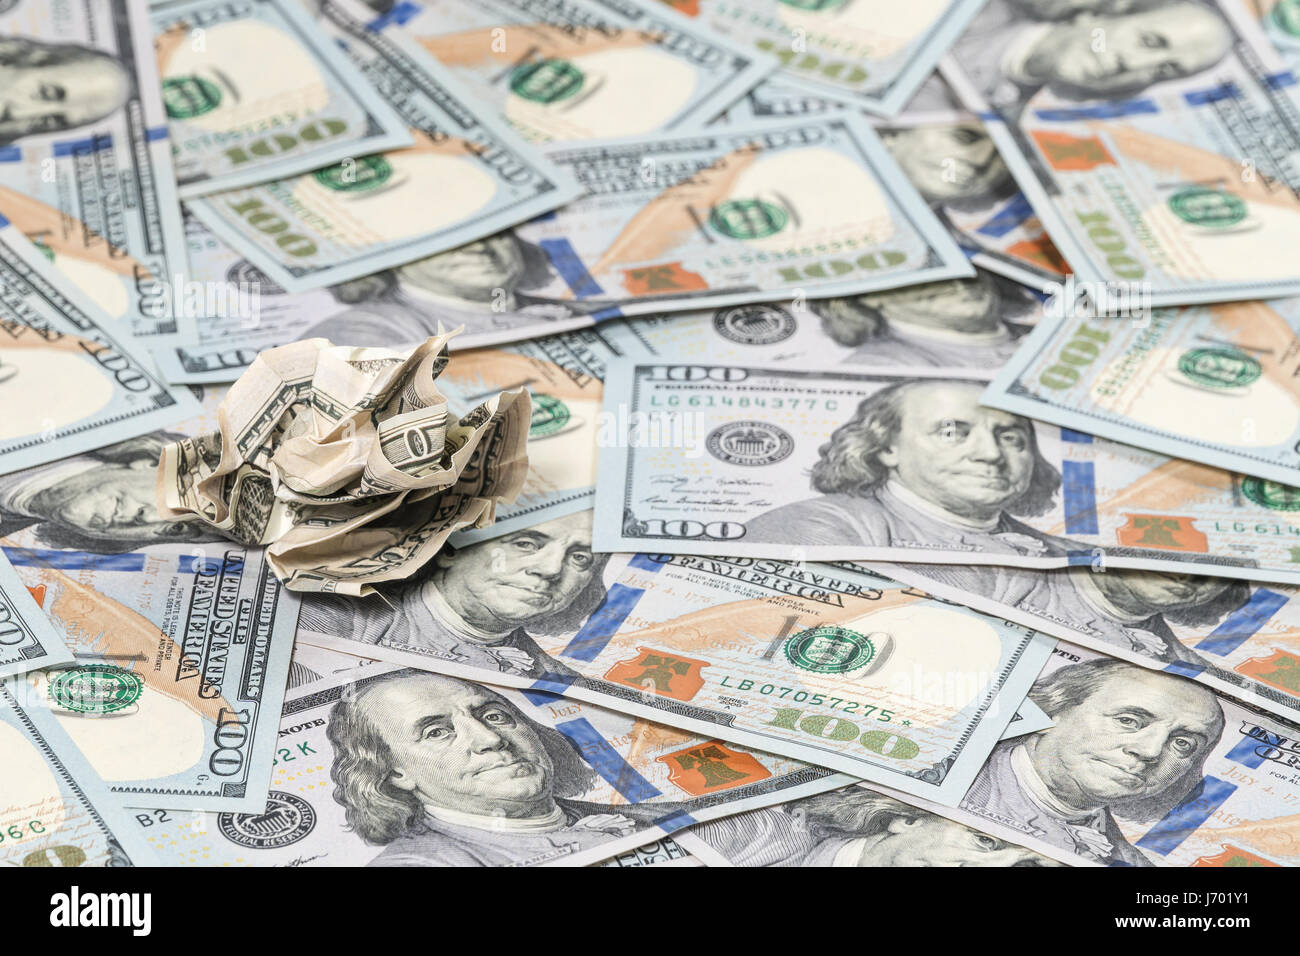 New 100 New Hundred Dollar Bill Stock Photos Amp New 100 New